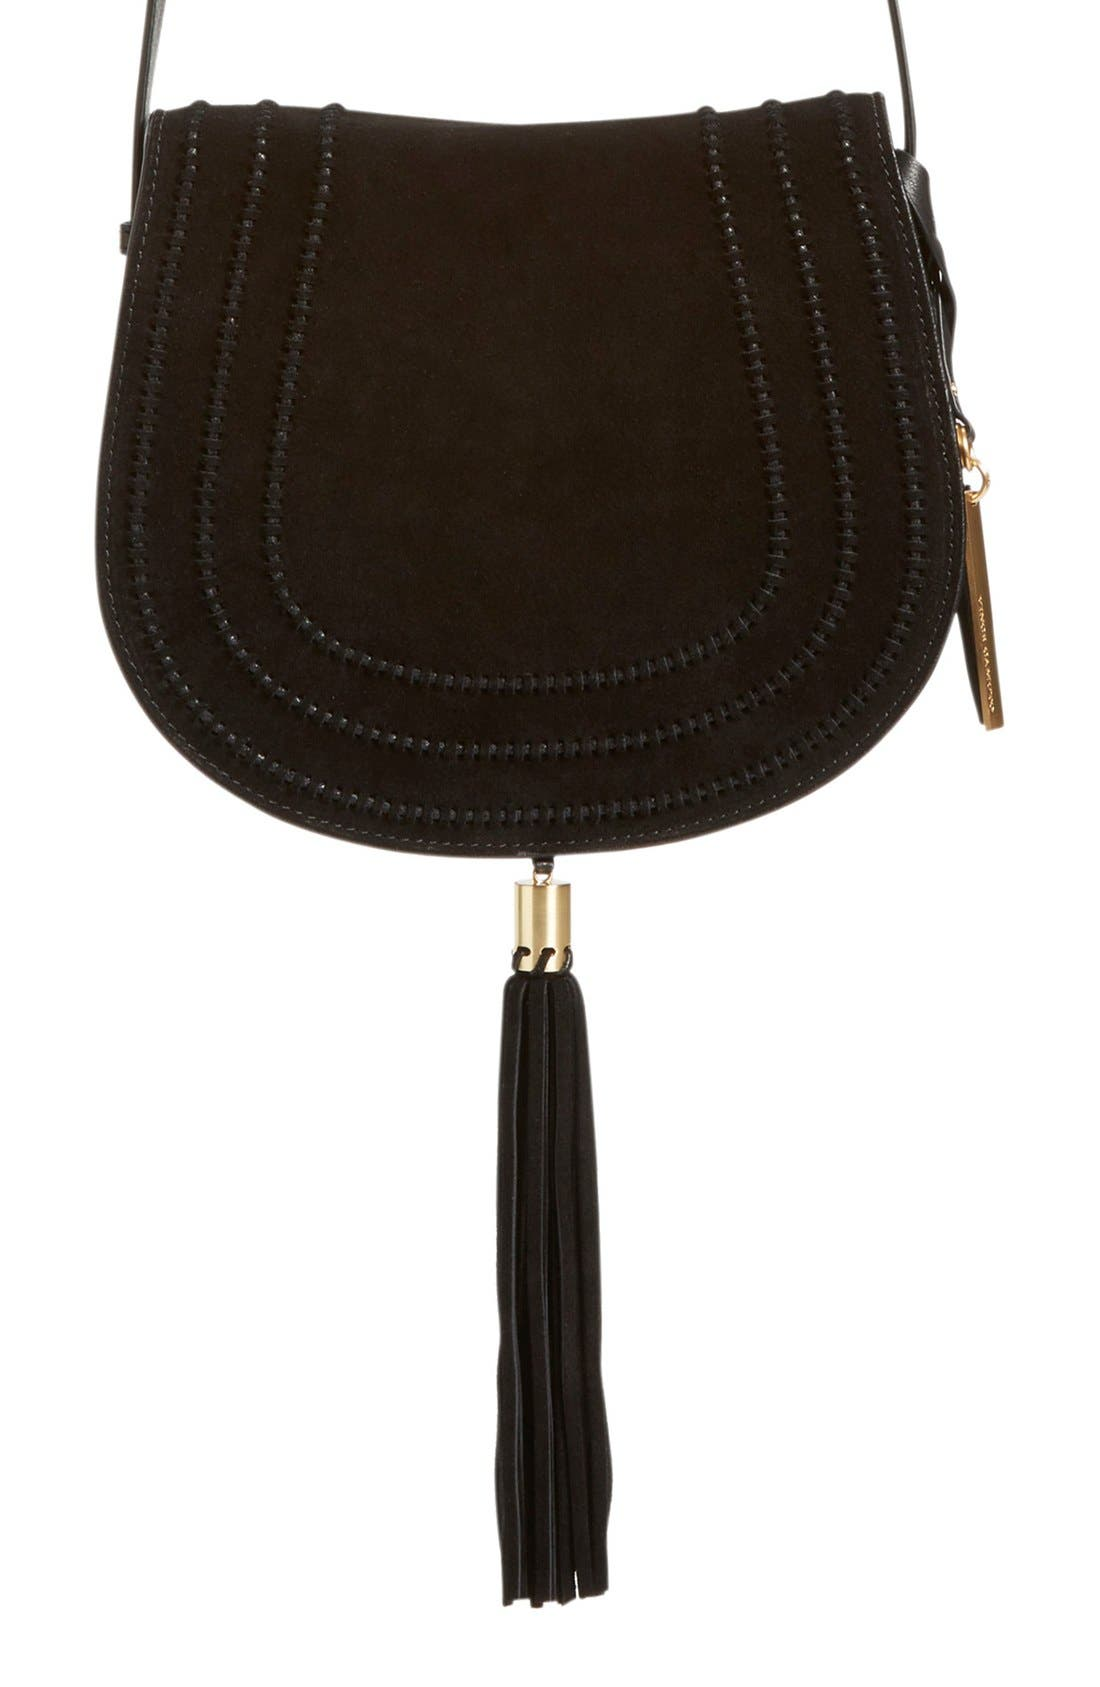 VINCE CAMUTO, 'Izzi' Tassel Leather & Suede Crossbody Bag, Main thumbnail 1, color, 001